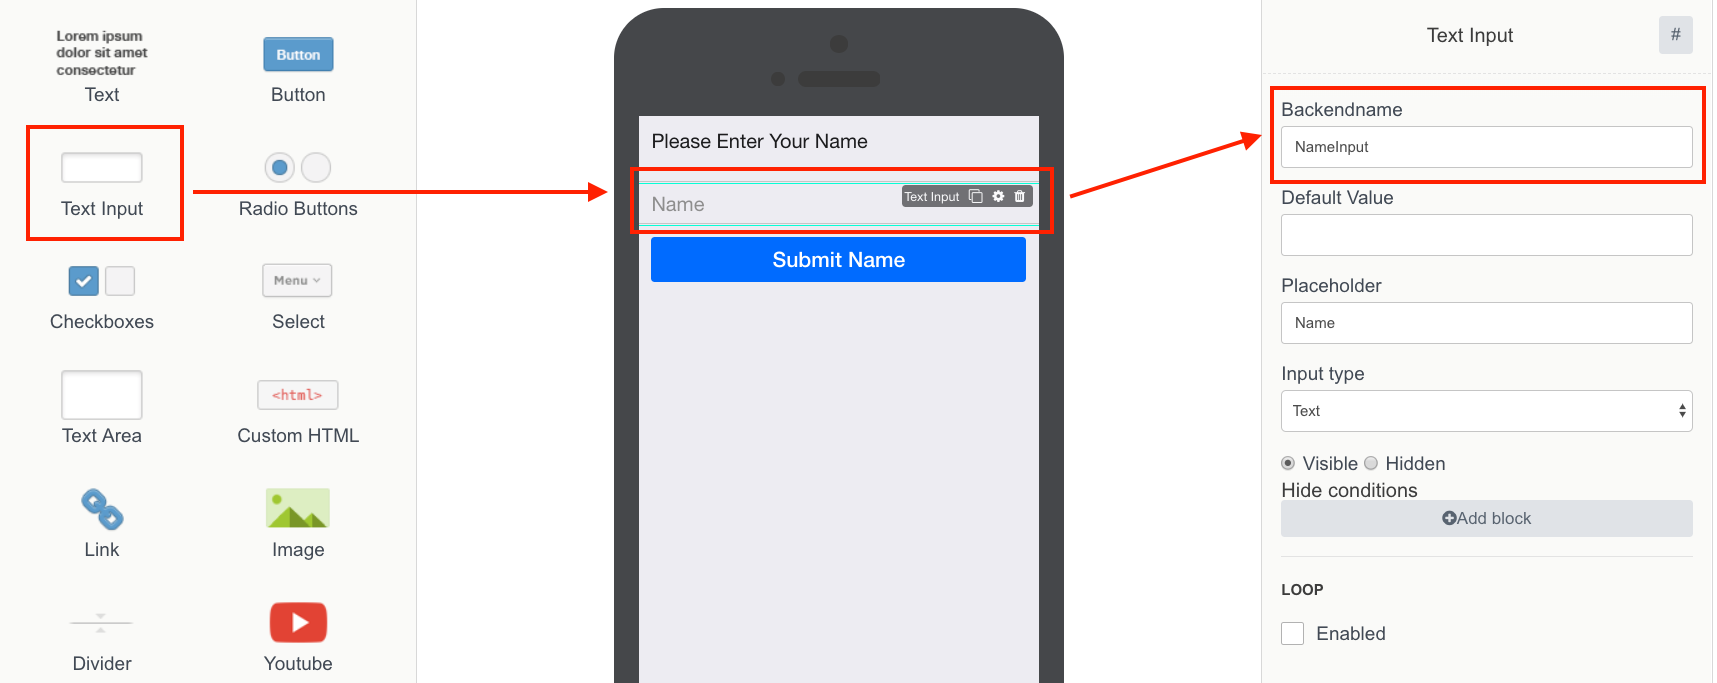 the Screenshot shows the proccess of adding Text input to the screen in Mobsted Multichannel PWA application builder